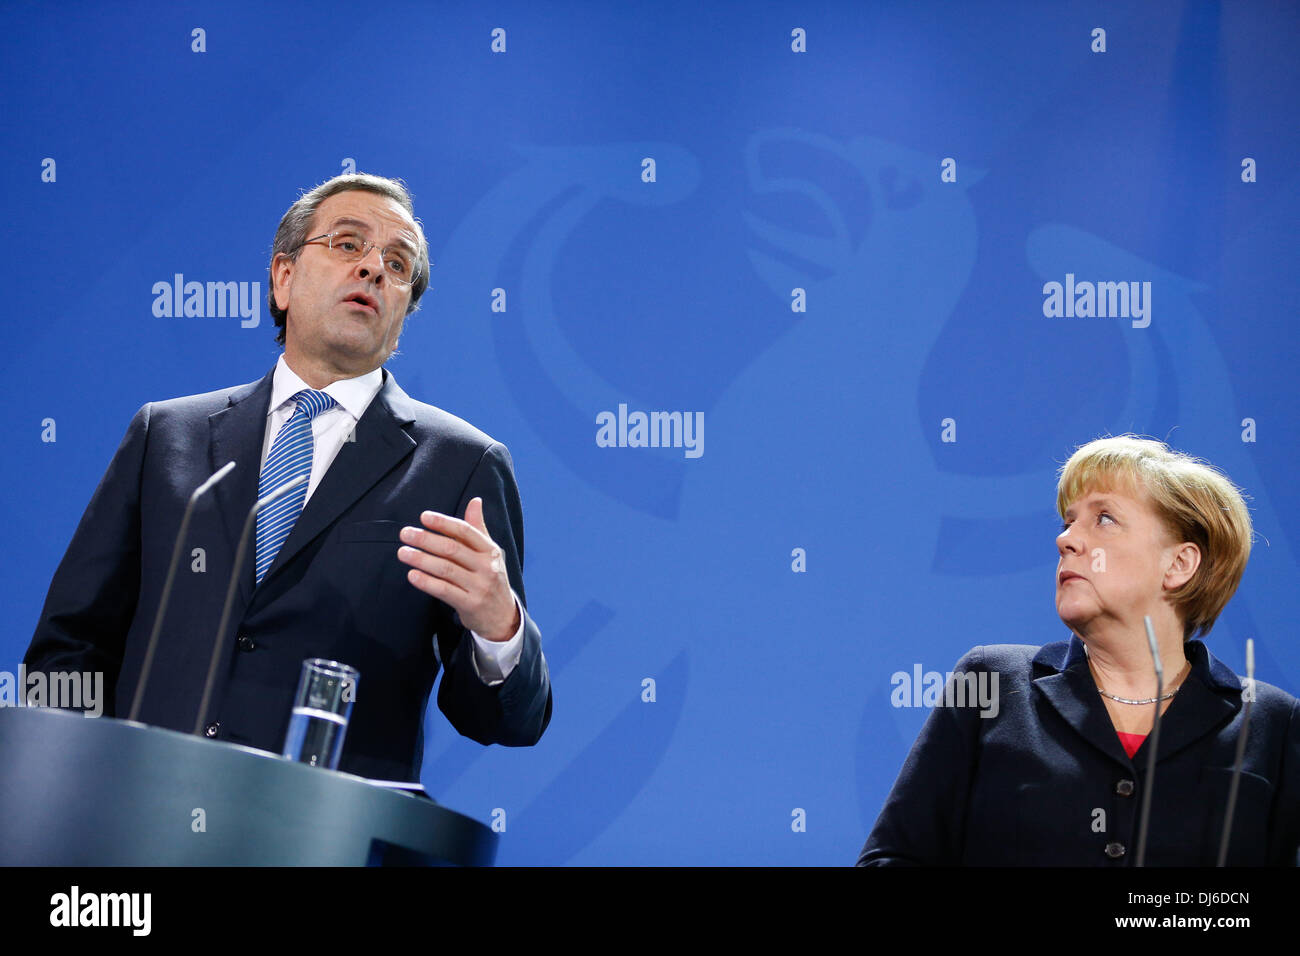 Berlin, Germany. 22nd Nov, 2013. Angela Merkel, German Chancellor, receives Andonis Samaras, Greek prime minister, at the Chancellery in Berlin. / Picture: Angela Merkel, German Chancellor, and Andonis Samaras, Greek prime minister, during joint press conference at the Chancellery in Berlin., on November 22, 2013.Photo: Reynaldo Paganelli/NurPhoto Credit:  Reynaldo Paganelli/NurPhoto/ZUMAPRESS.com/Alamy Live News - Stock Image